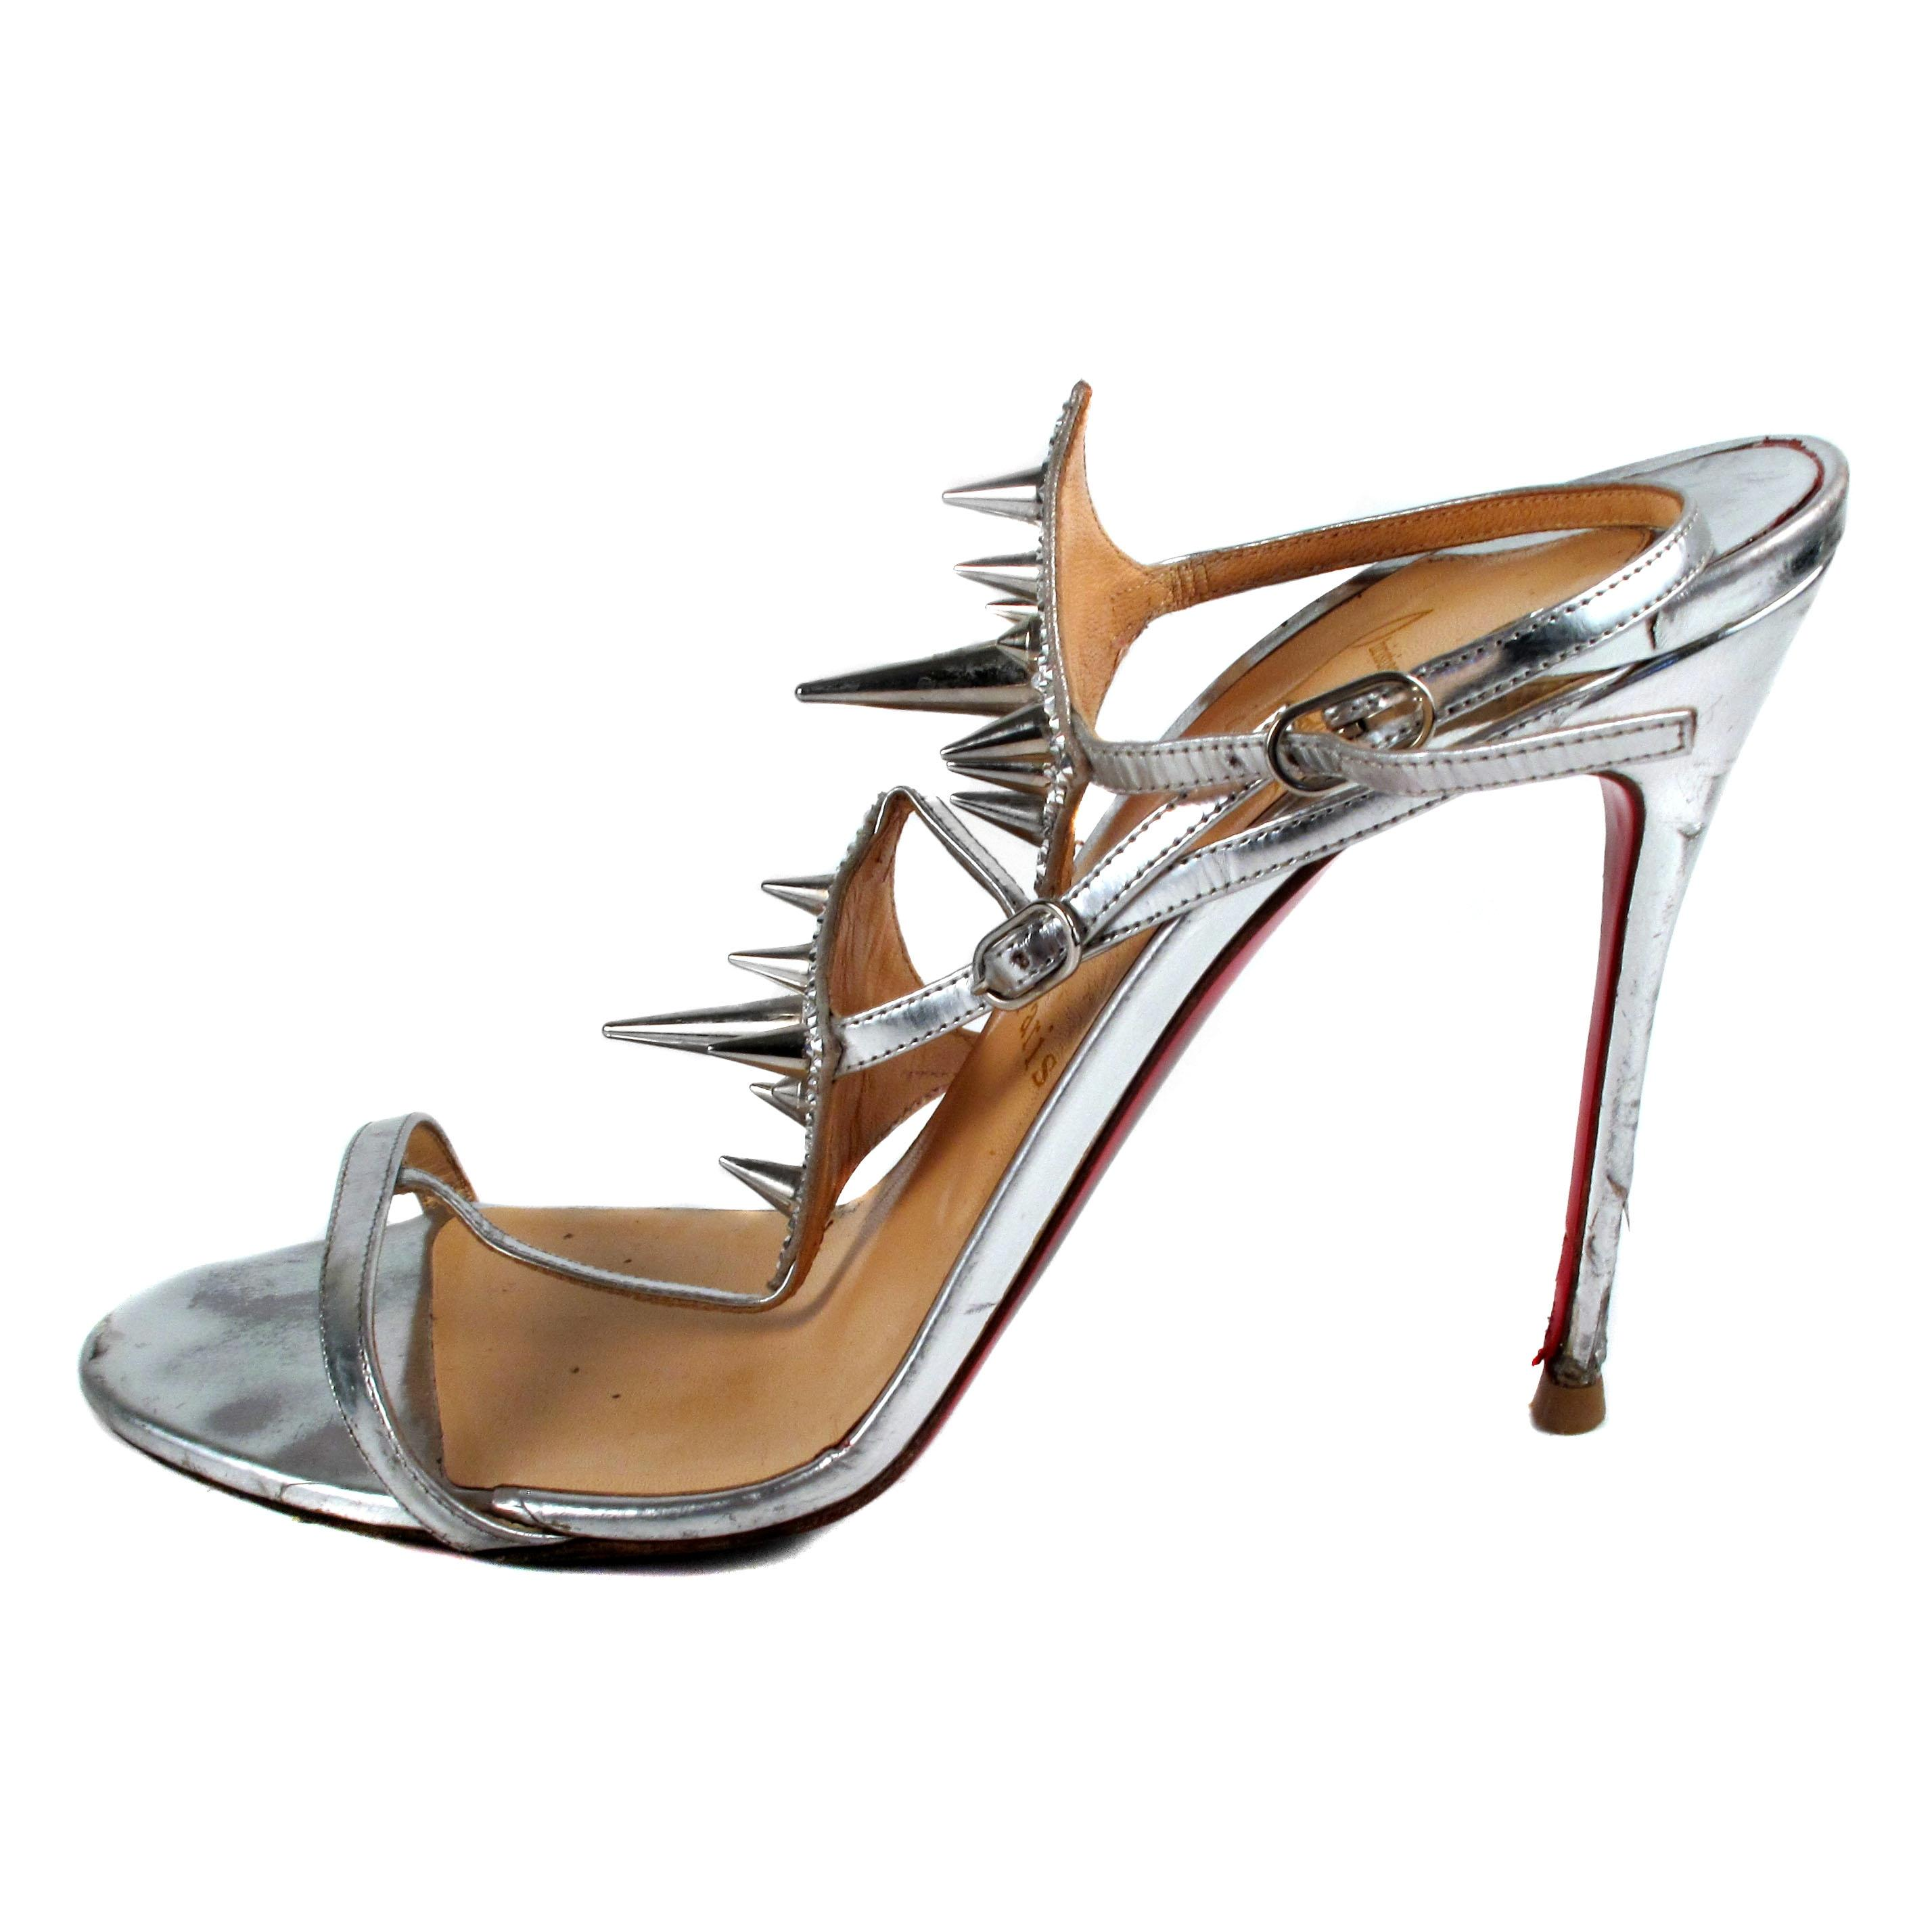 38cdfc40d ... Christian Louboutin Silver Heels - 39.5 39.5 39.5 Spike Crystal Lady  Max Specchi Sandals Size US ...